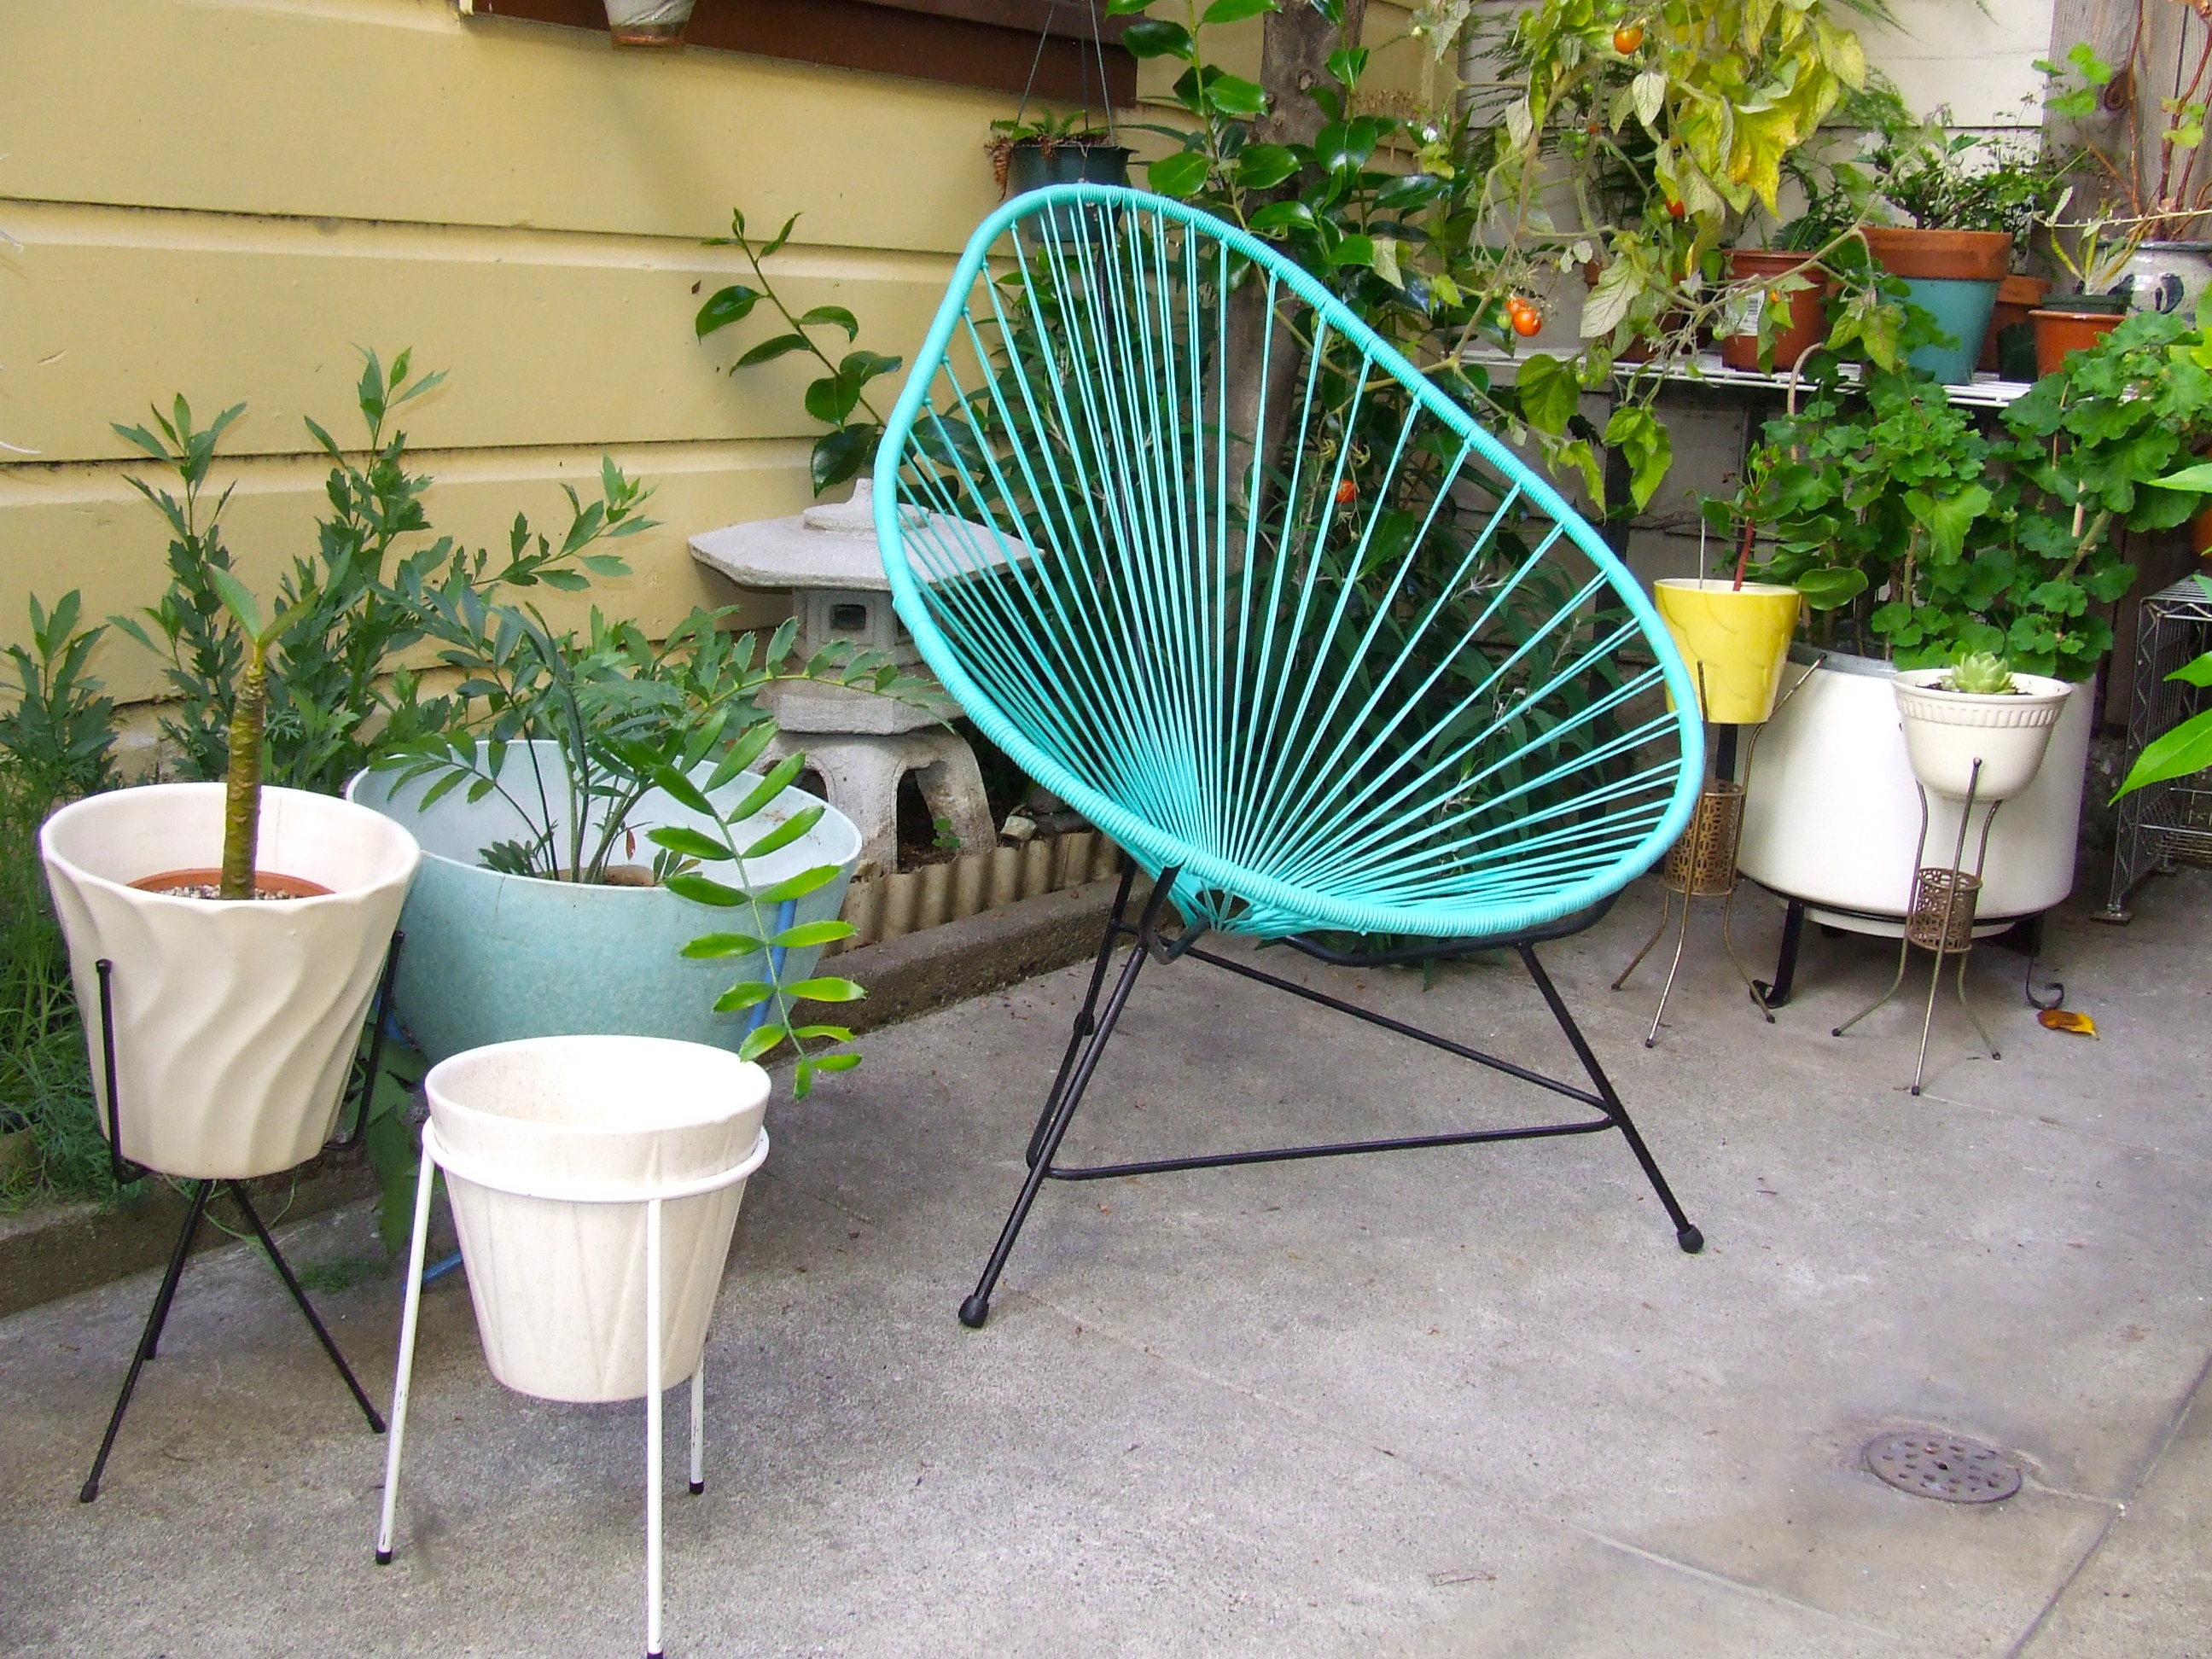 Acapulco Chairs The Amazing Acapulco Chair A San Francisco Clockwork Orange